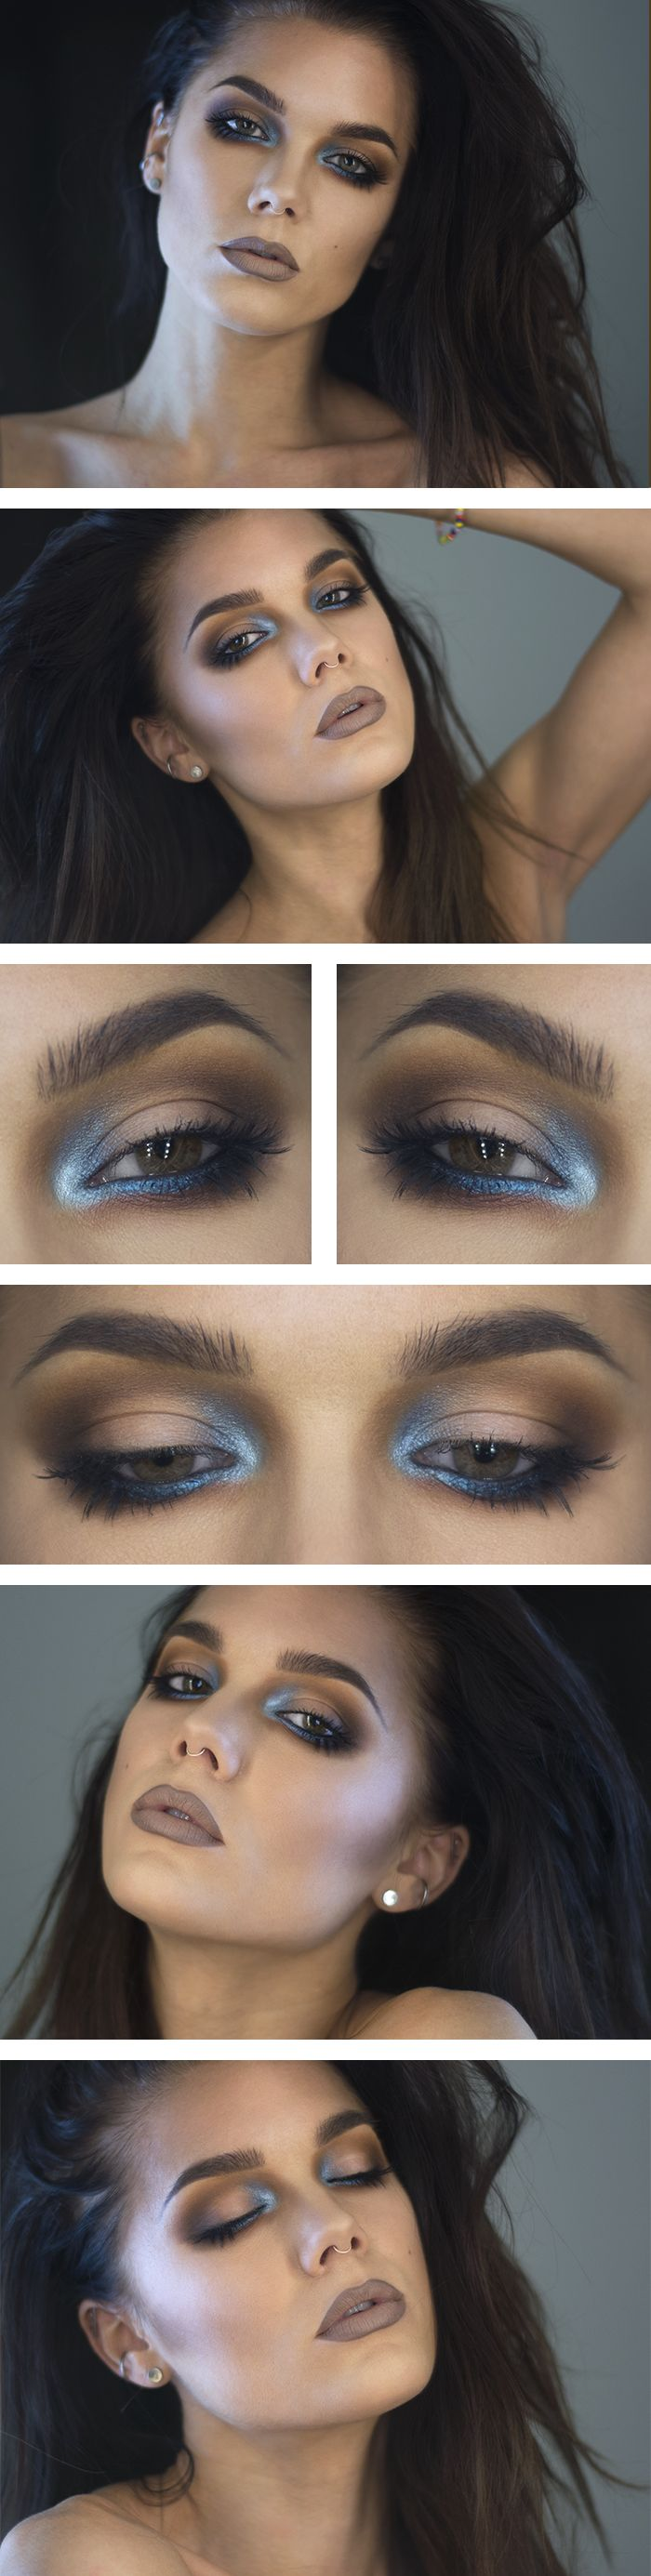 best images about heavy makeup on pinterest seasons dark and